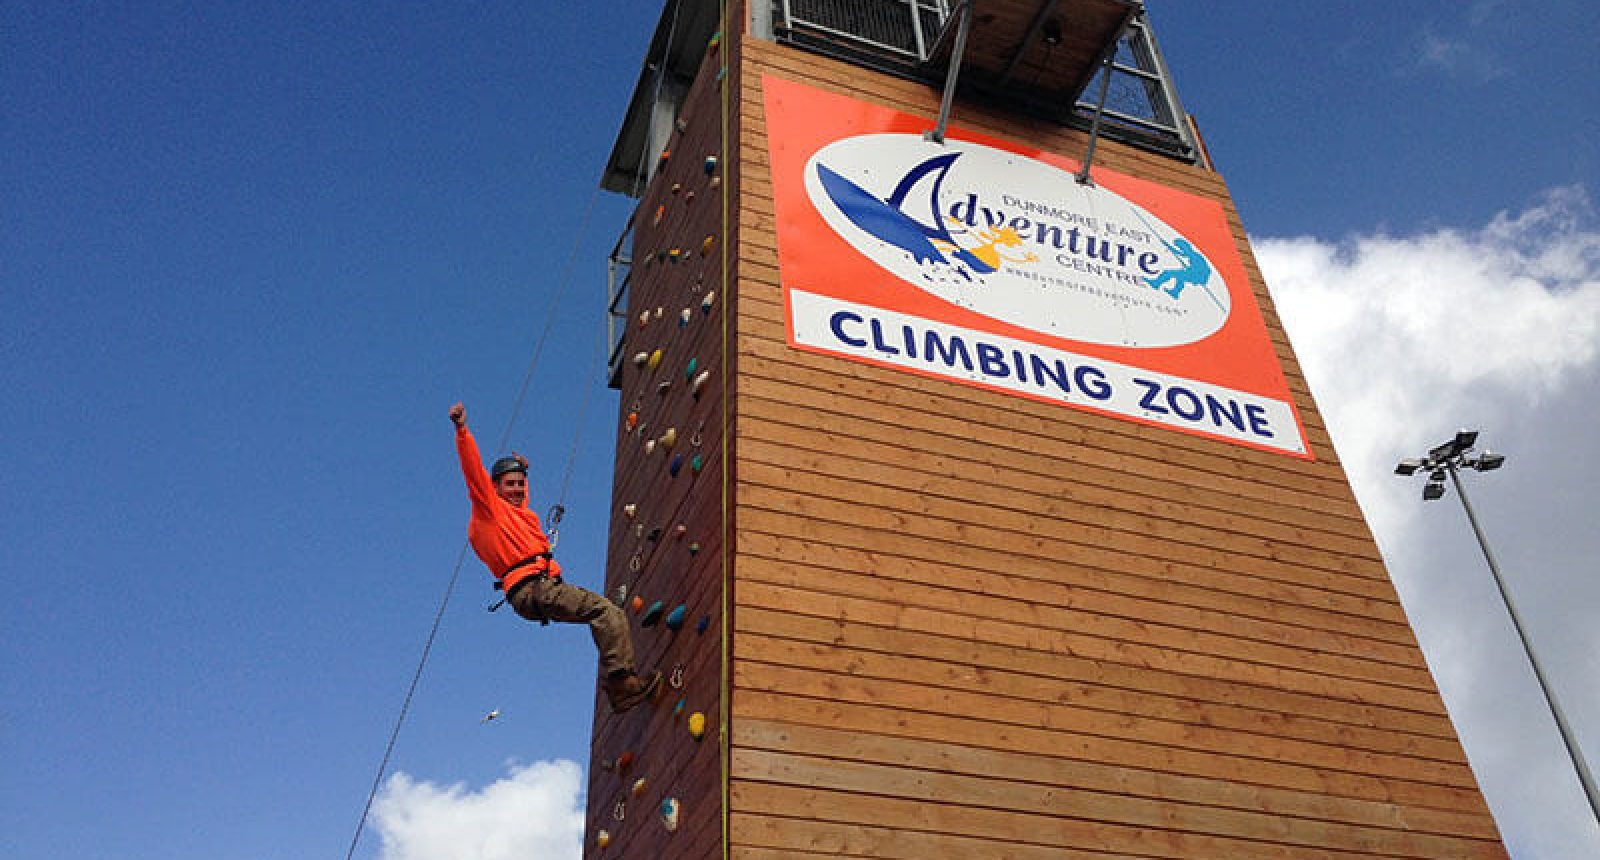 Climbing & Abseiling for Adults